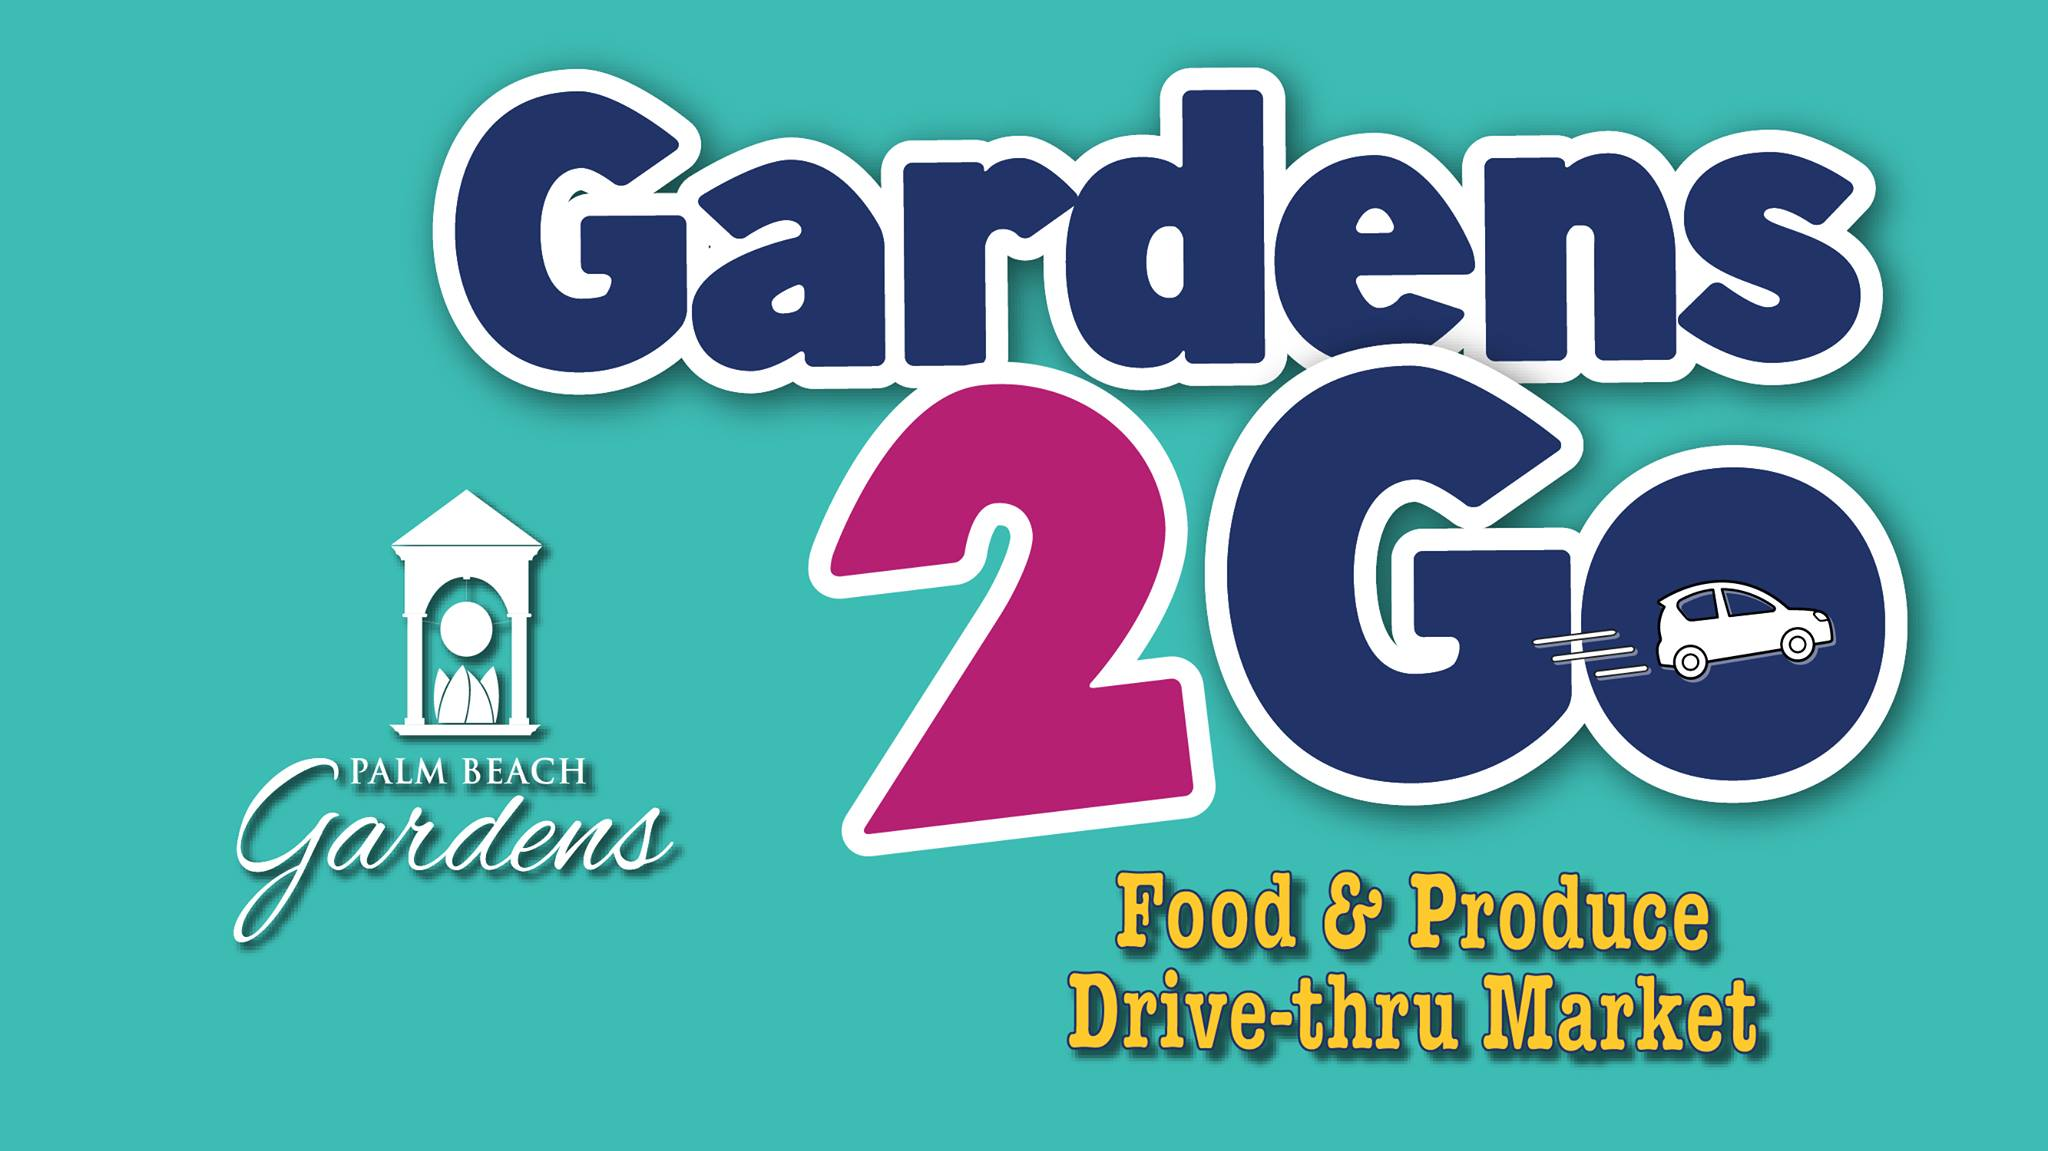 Gardens 2 Go Food and Produce Drive-Thru Market.